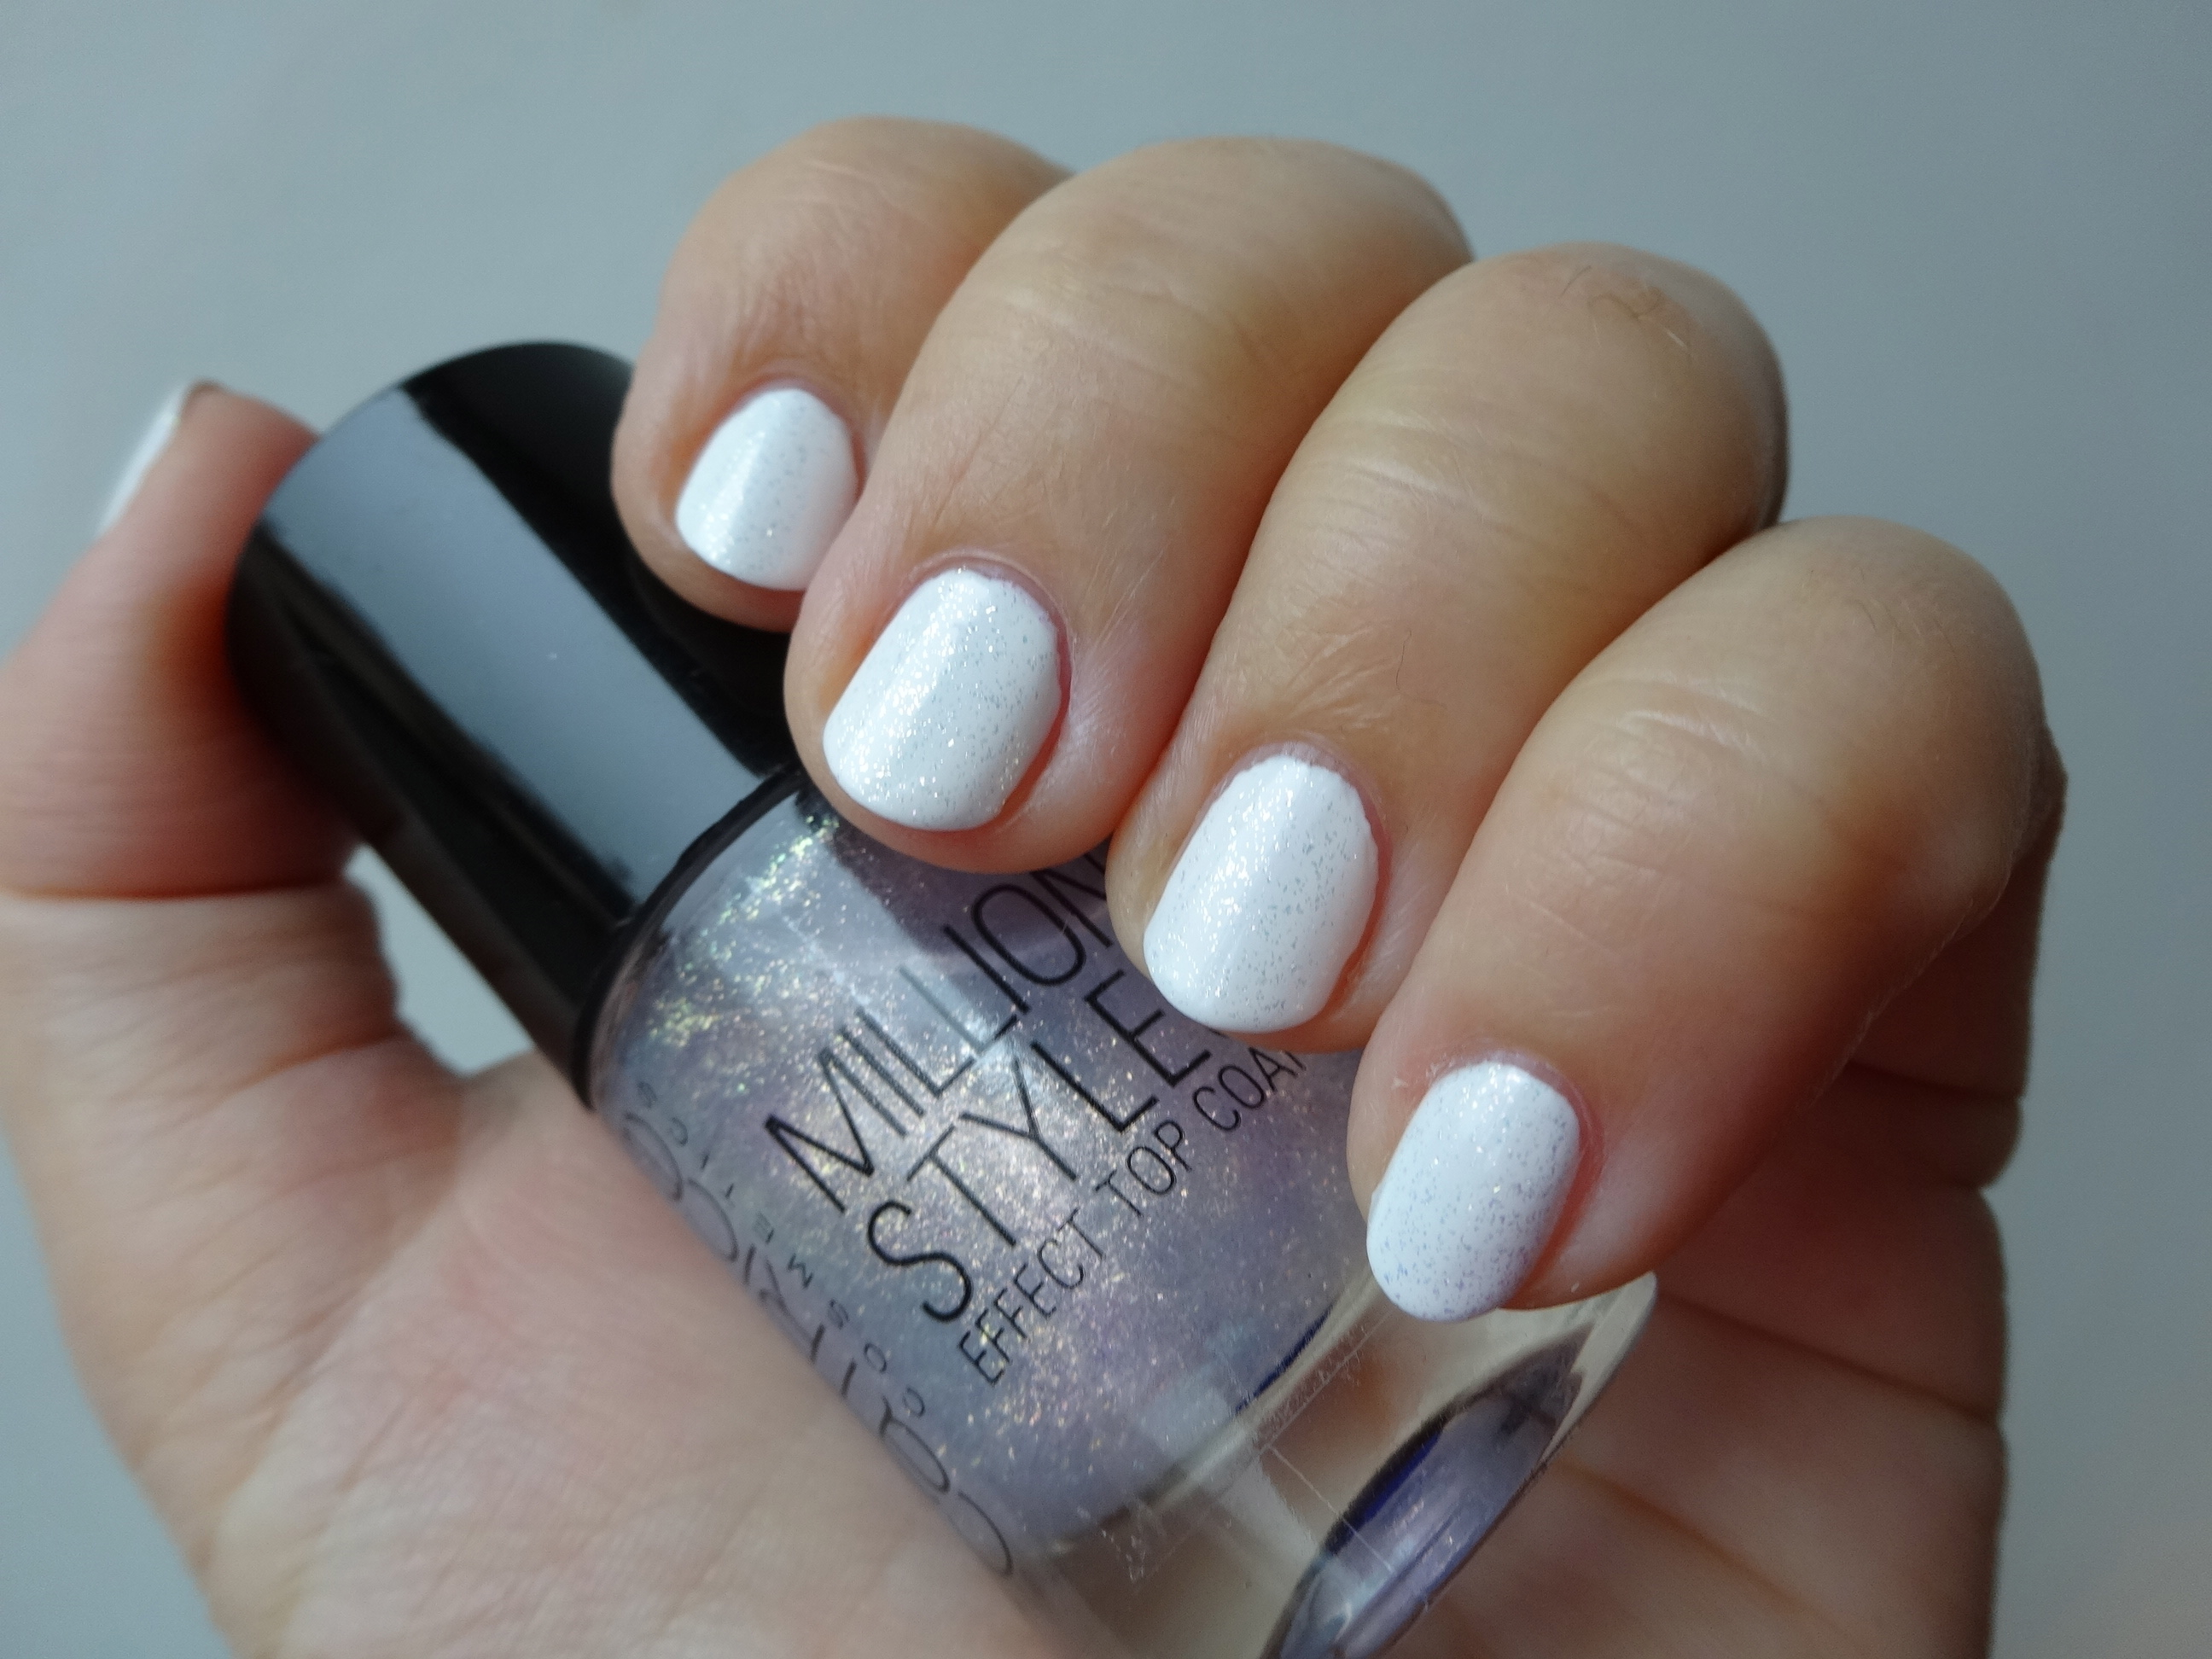 Catrice 02 Holo Que Tal Million Styles Effect Top Coat